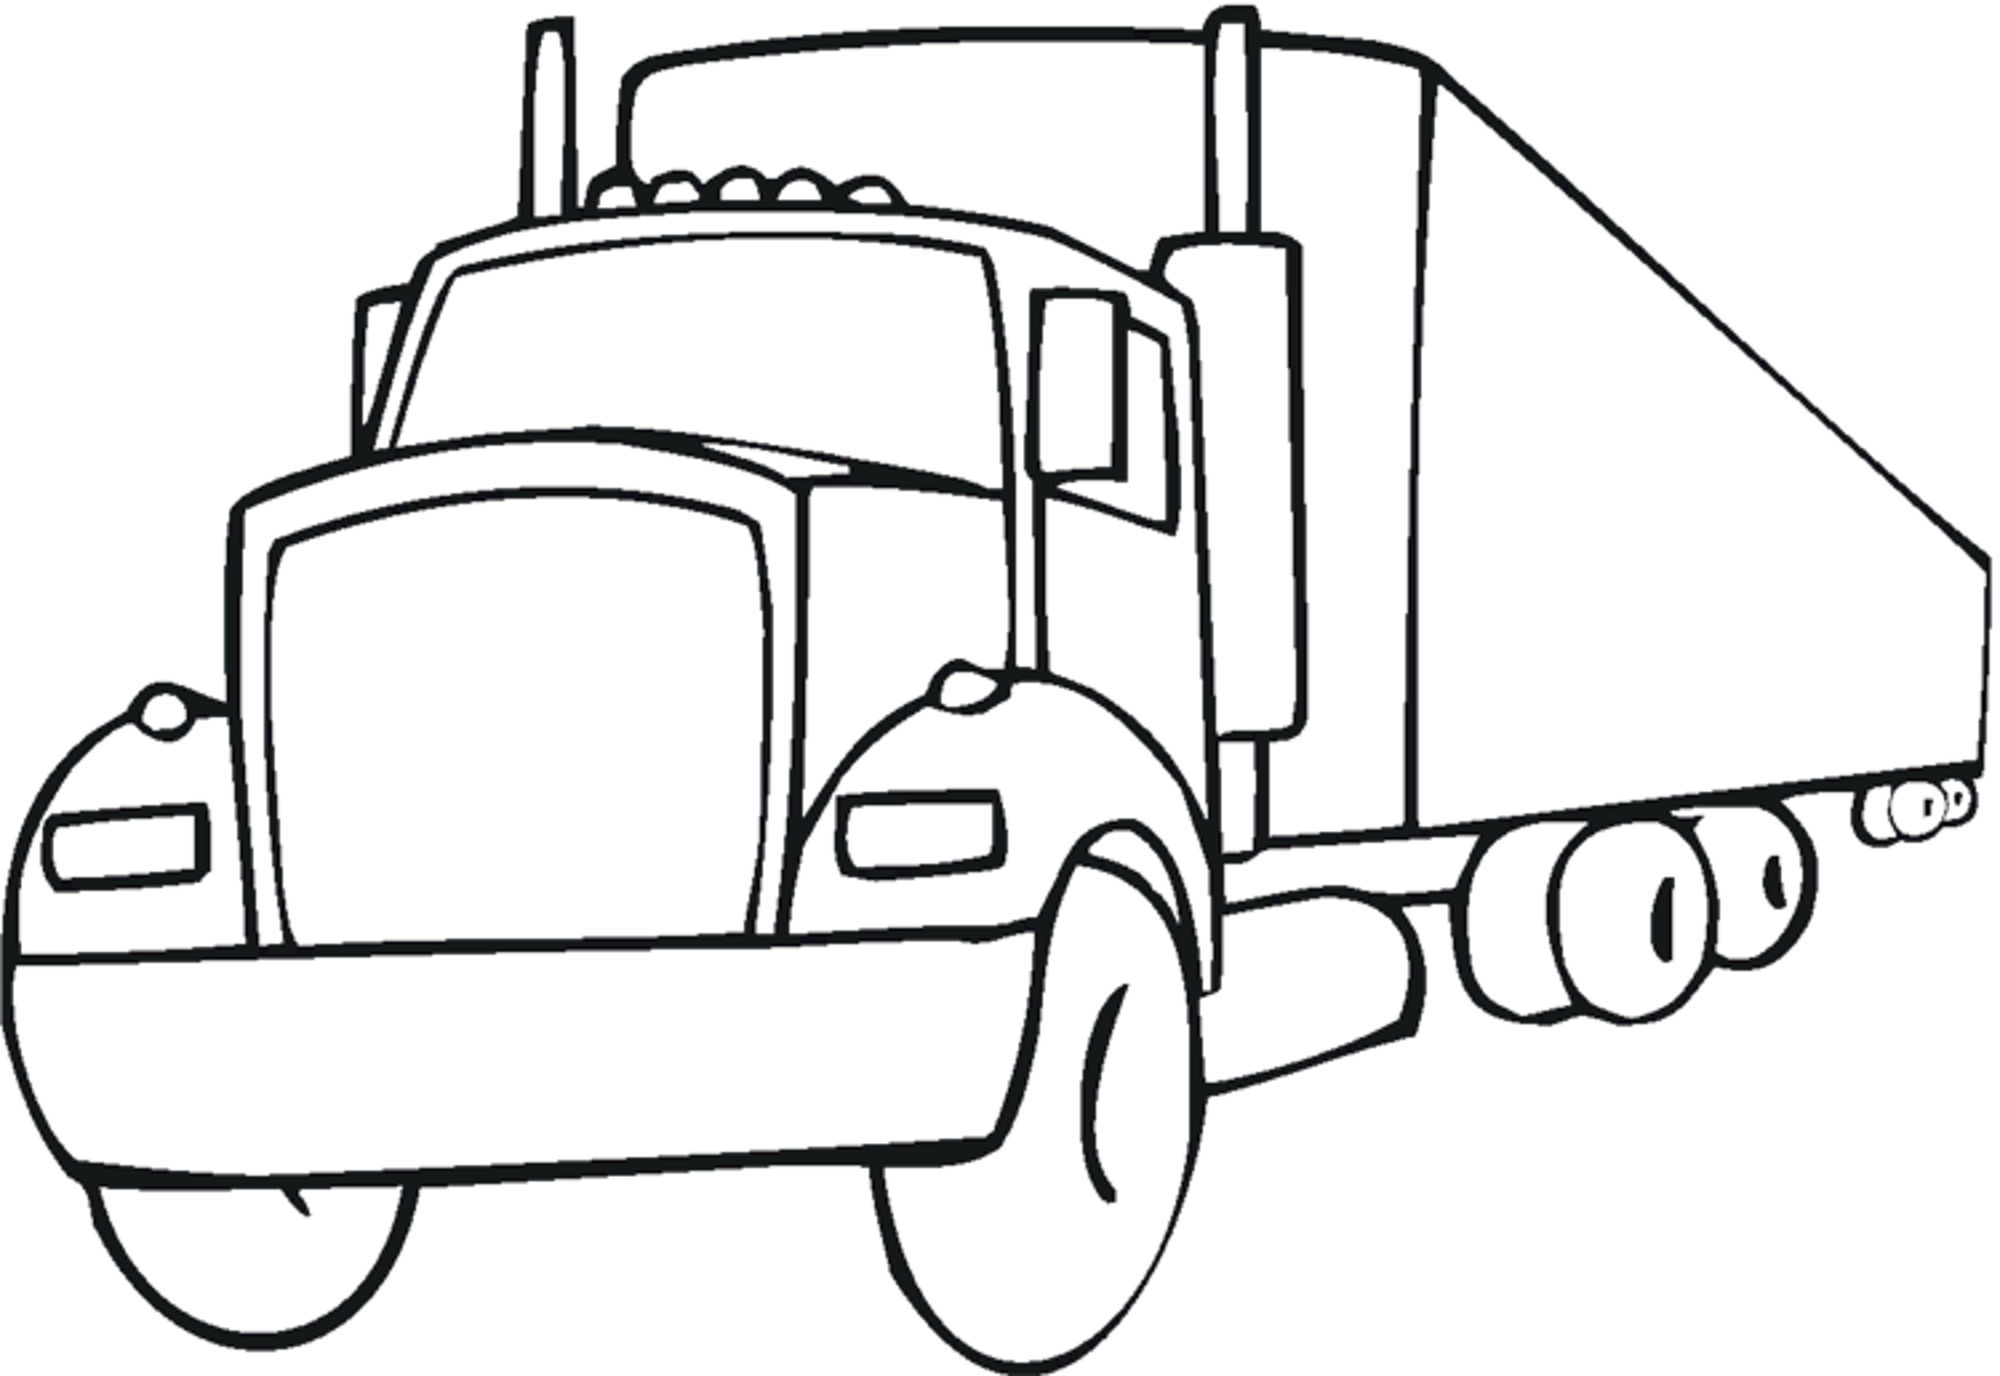 Print & Download Educational Fire Truck Coloring Pages Giving ...